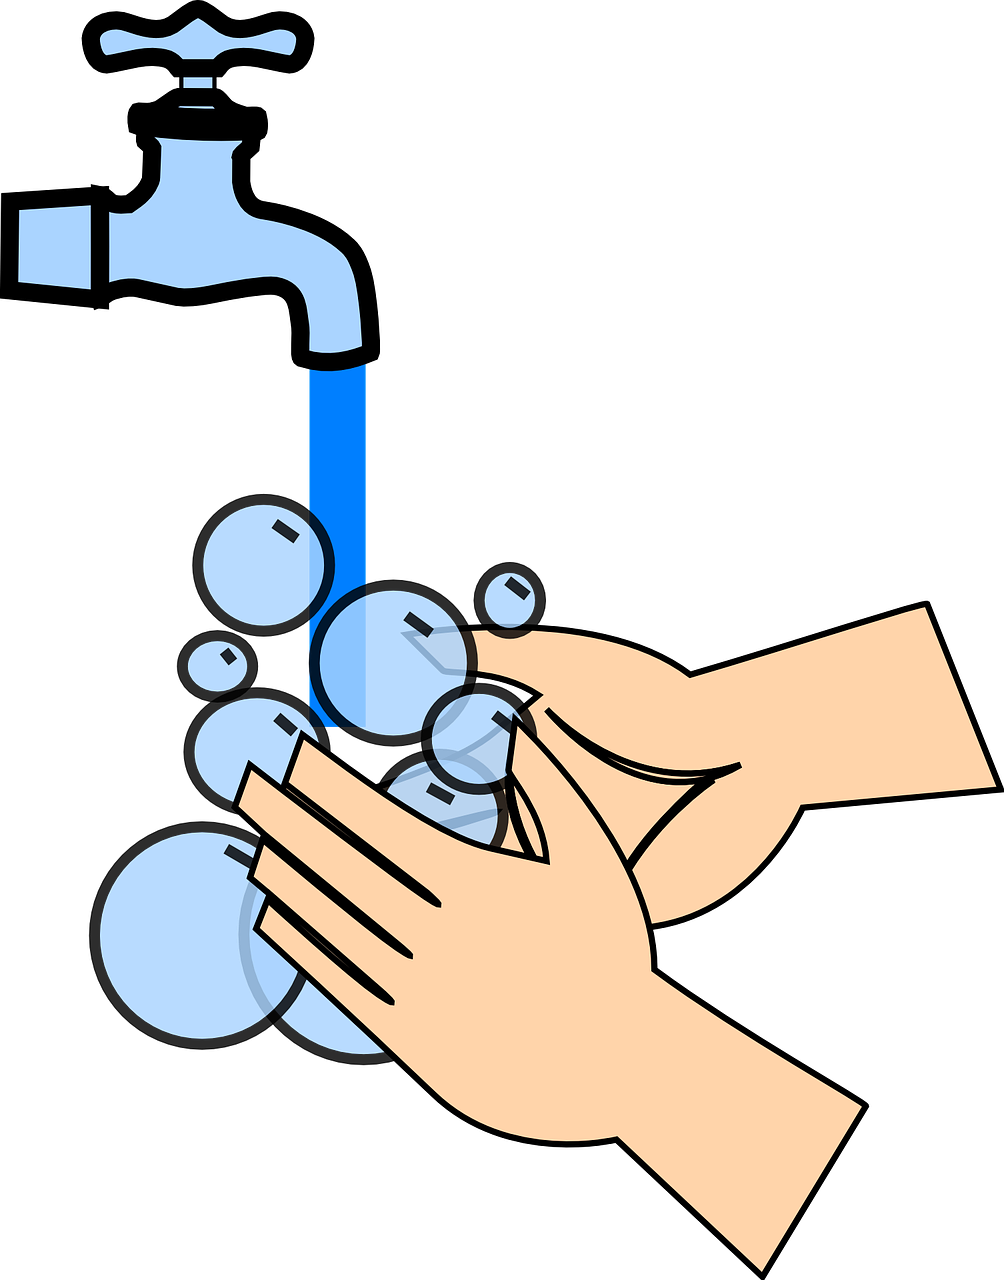 Hand washing under water with soap bubbles